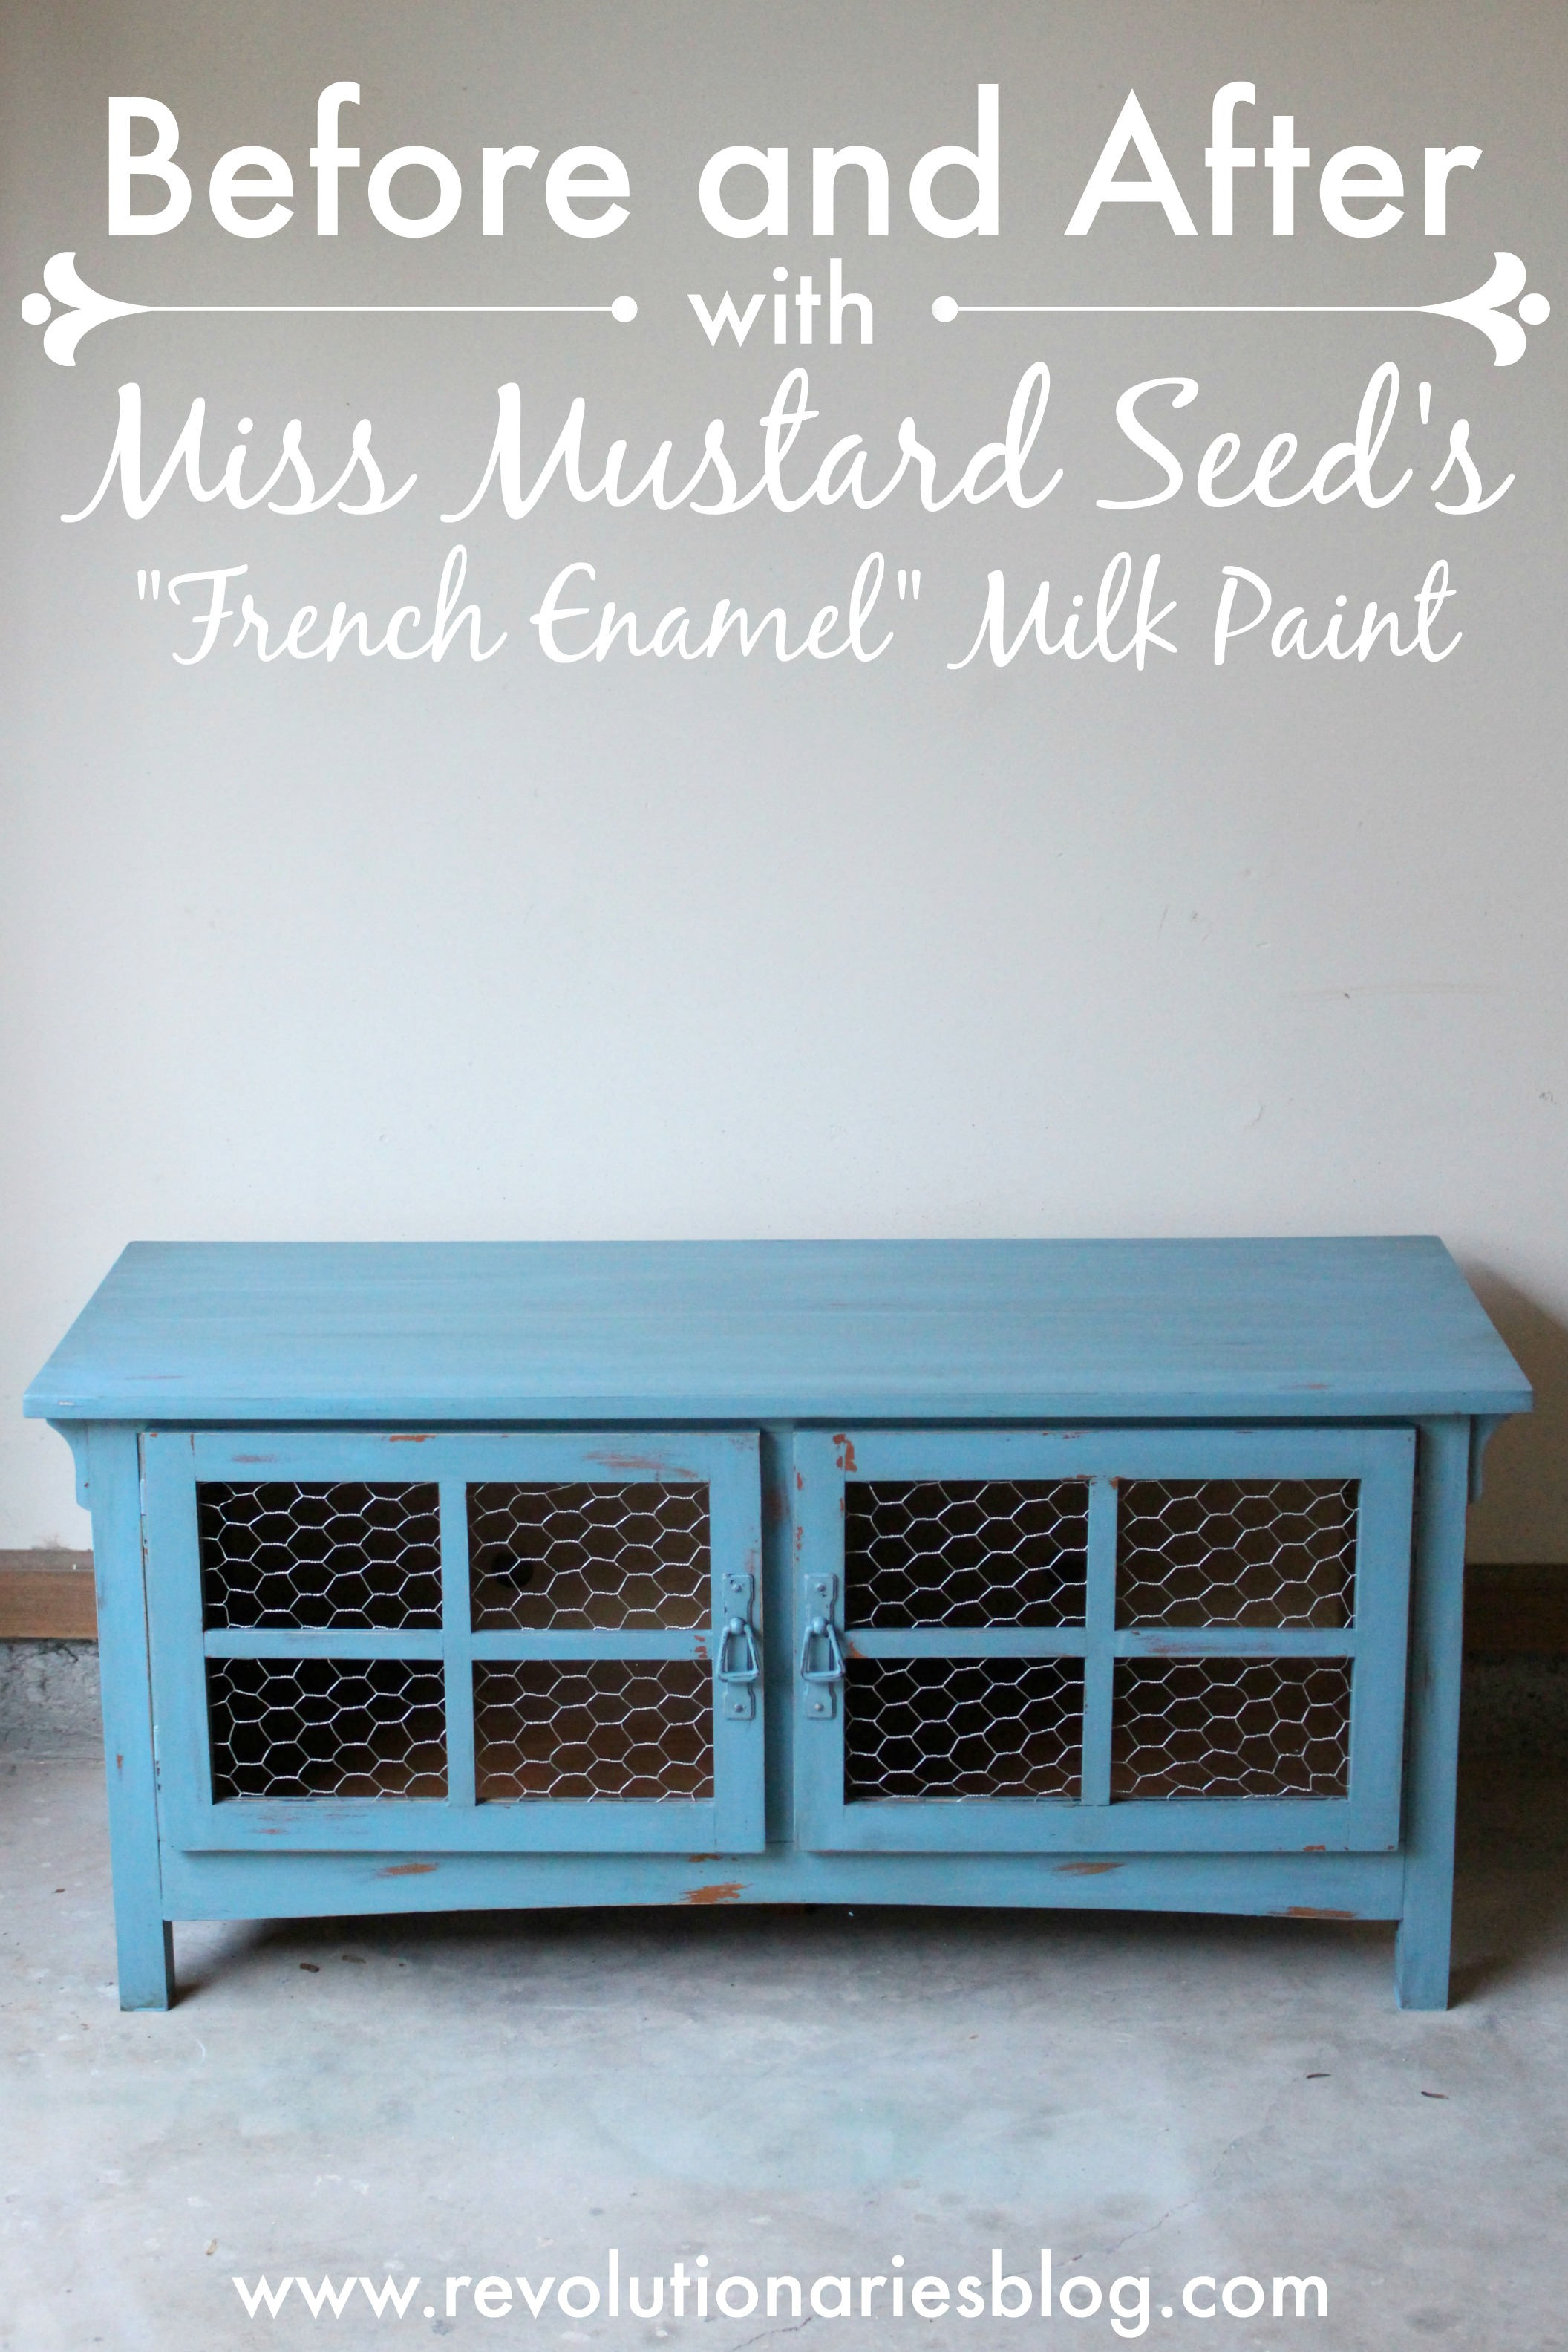 before-and-after-miss-mustard-seed-french-enamel-1.jpg